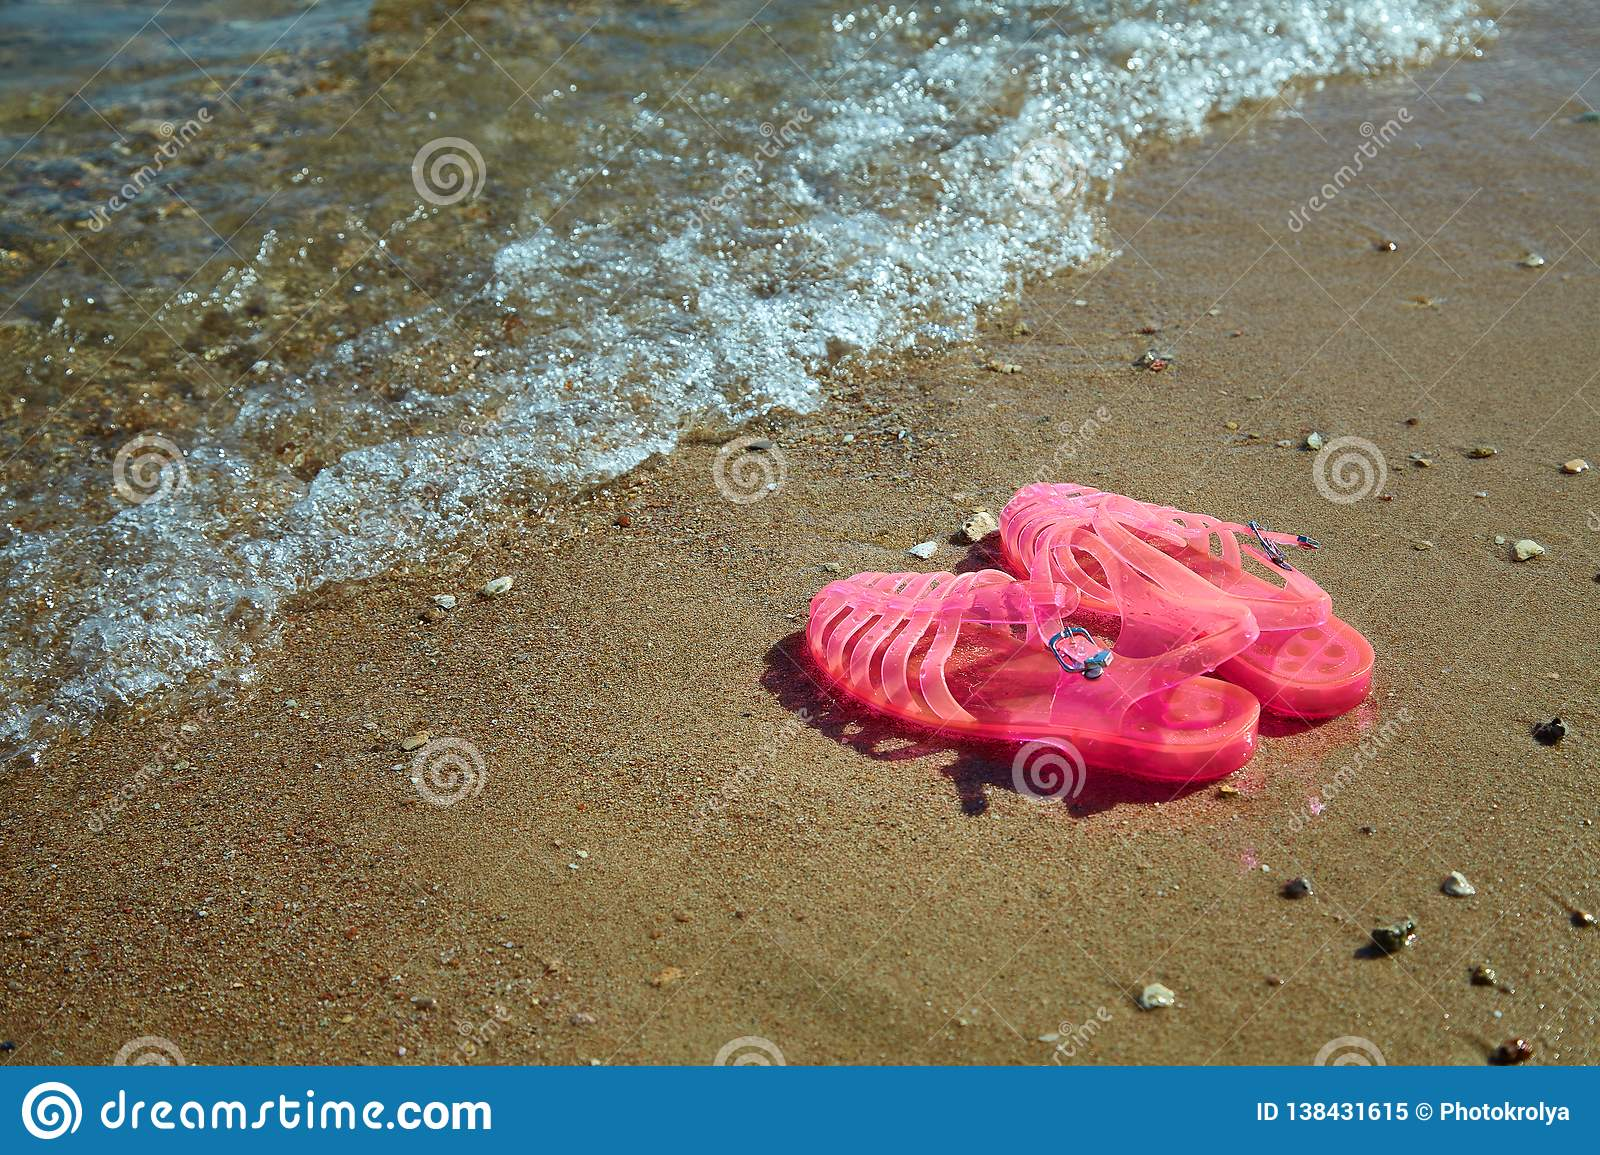 80dde9d16 Pink Women`s JELLY SANDALS on a sea shore. LADIES FLAT JELLIES SUMMER BEACH  SHOES. Sand background